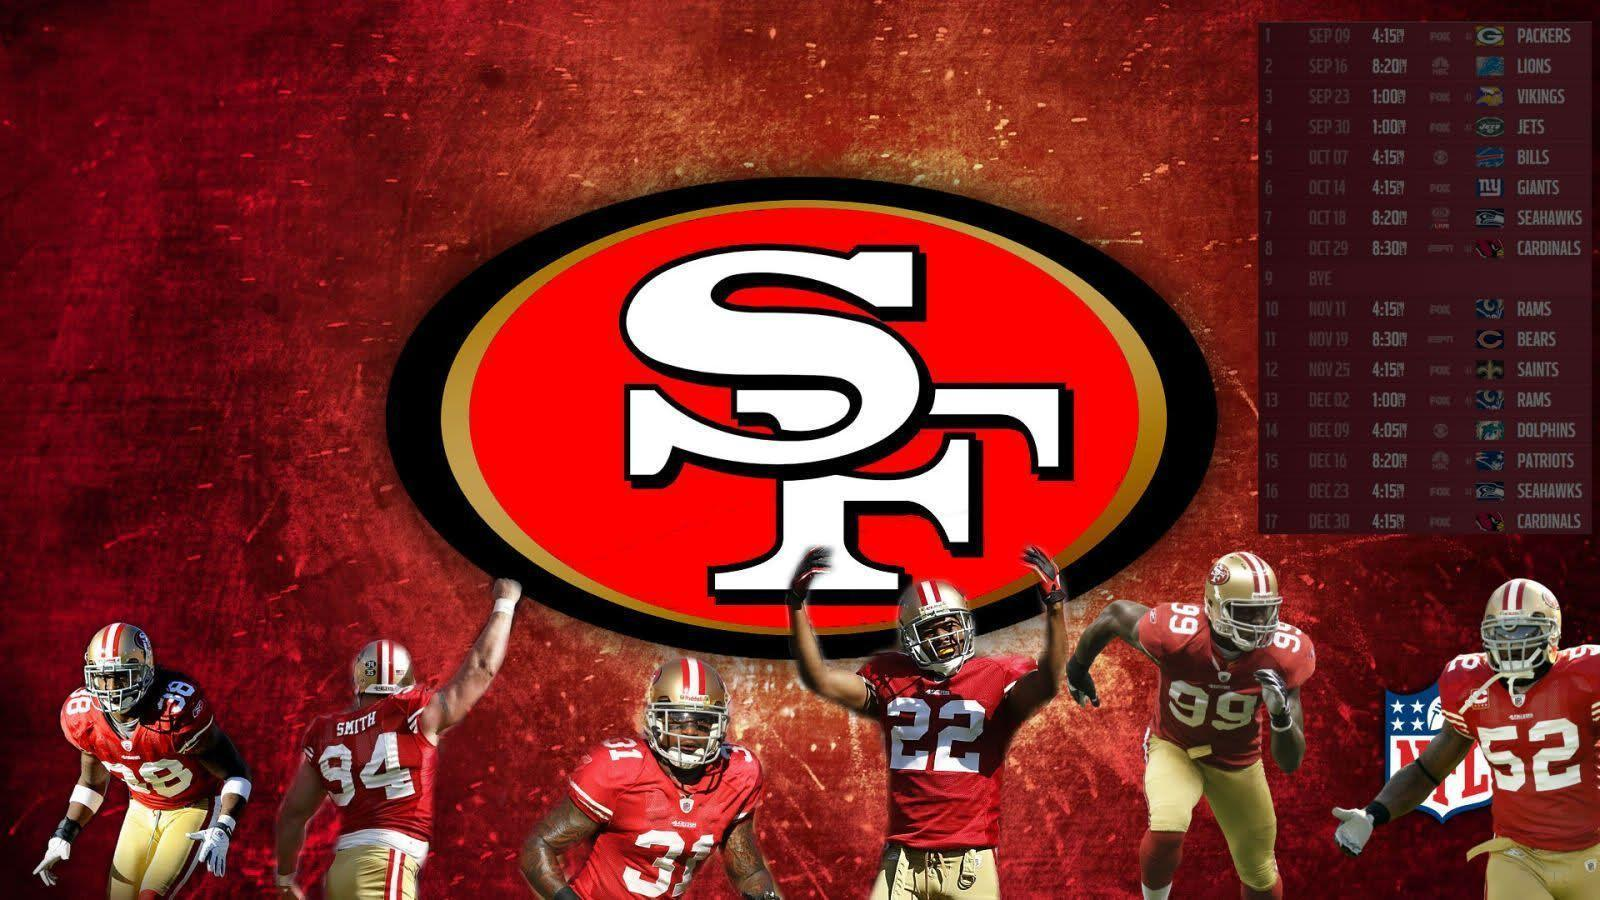 49ers wallpapers 2017 wallpaper cave